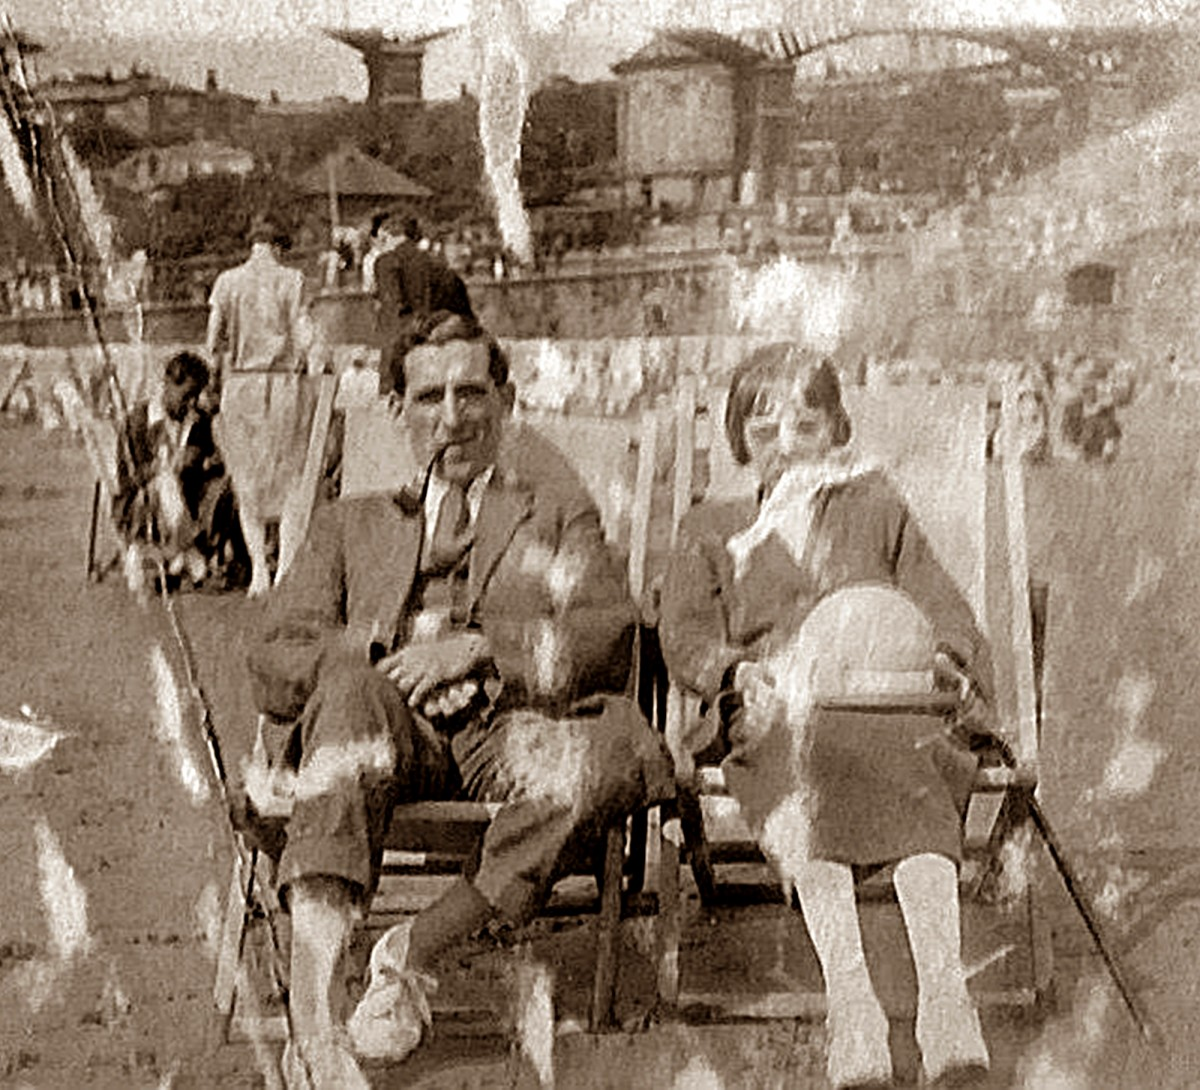 Grandad's older brother Arthur and his wife Elsie in happier times, enjoying a day on the beach in the early 1930s.